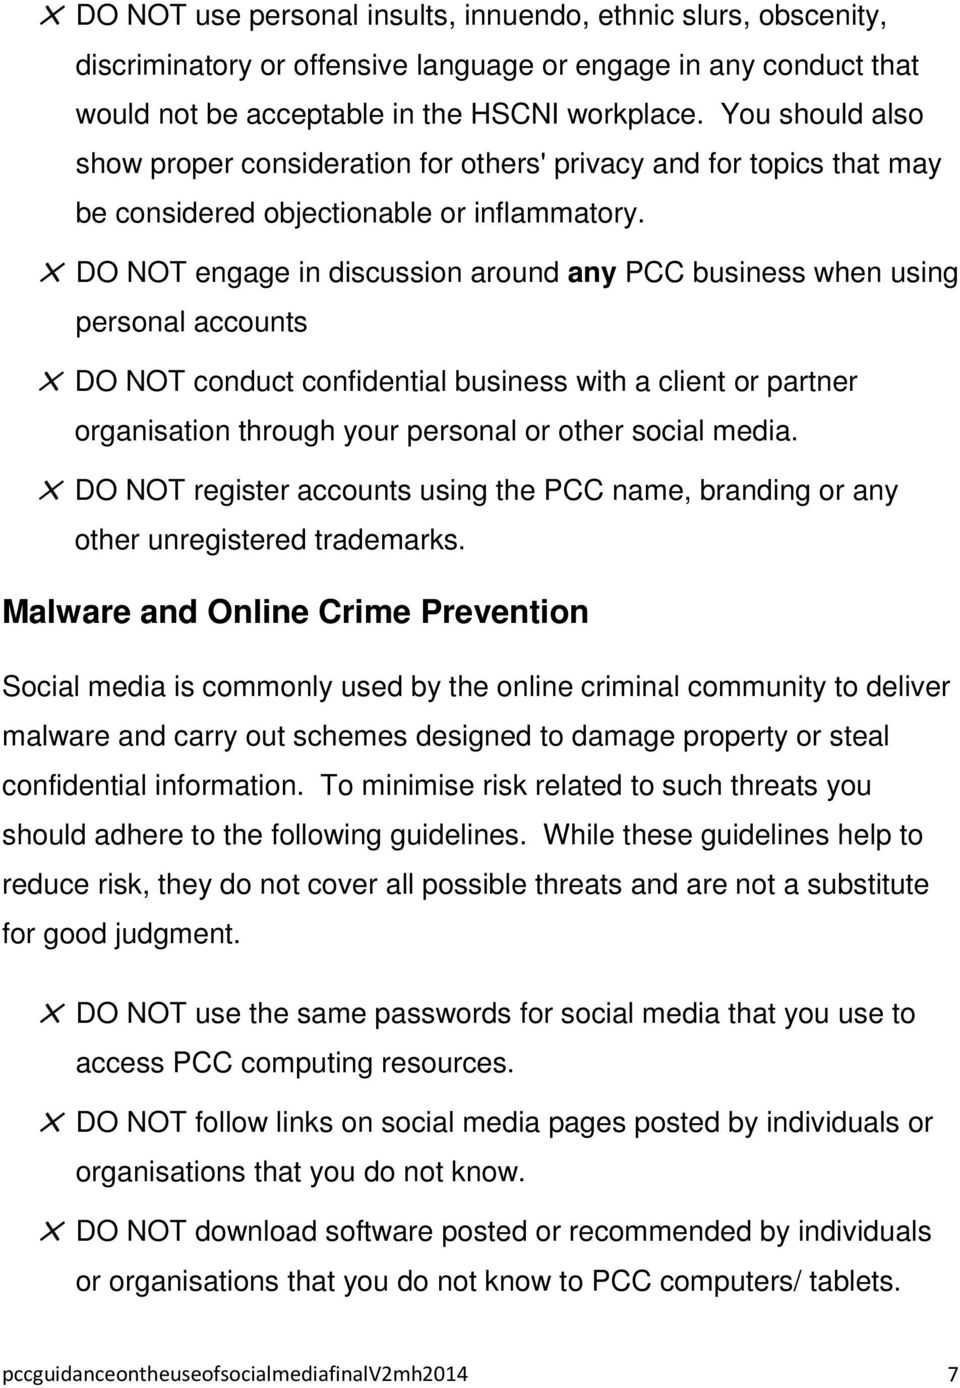 DO NOT engage in discussion around any PCC business when using personal accounts DO NOT conduct confidential business with a client or partner organisation through your personal or other social media.